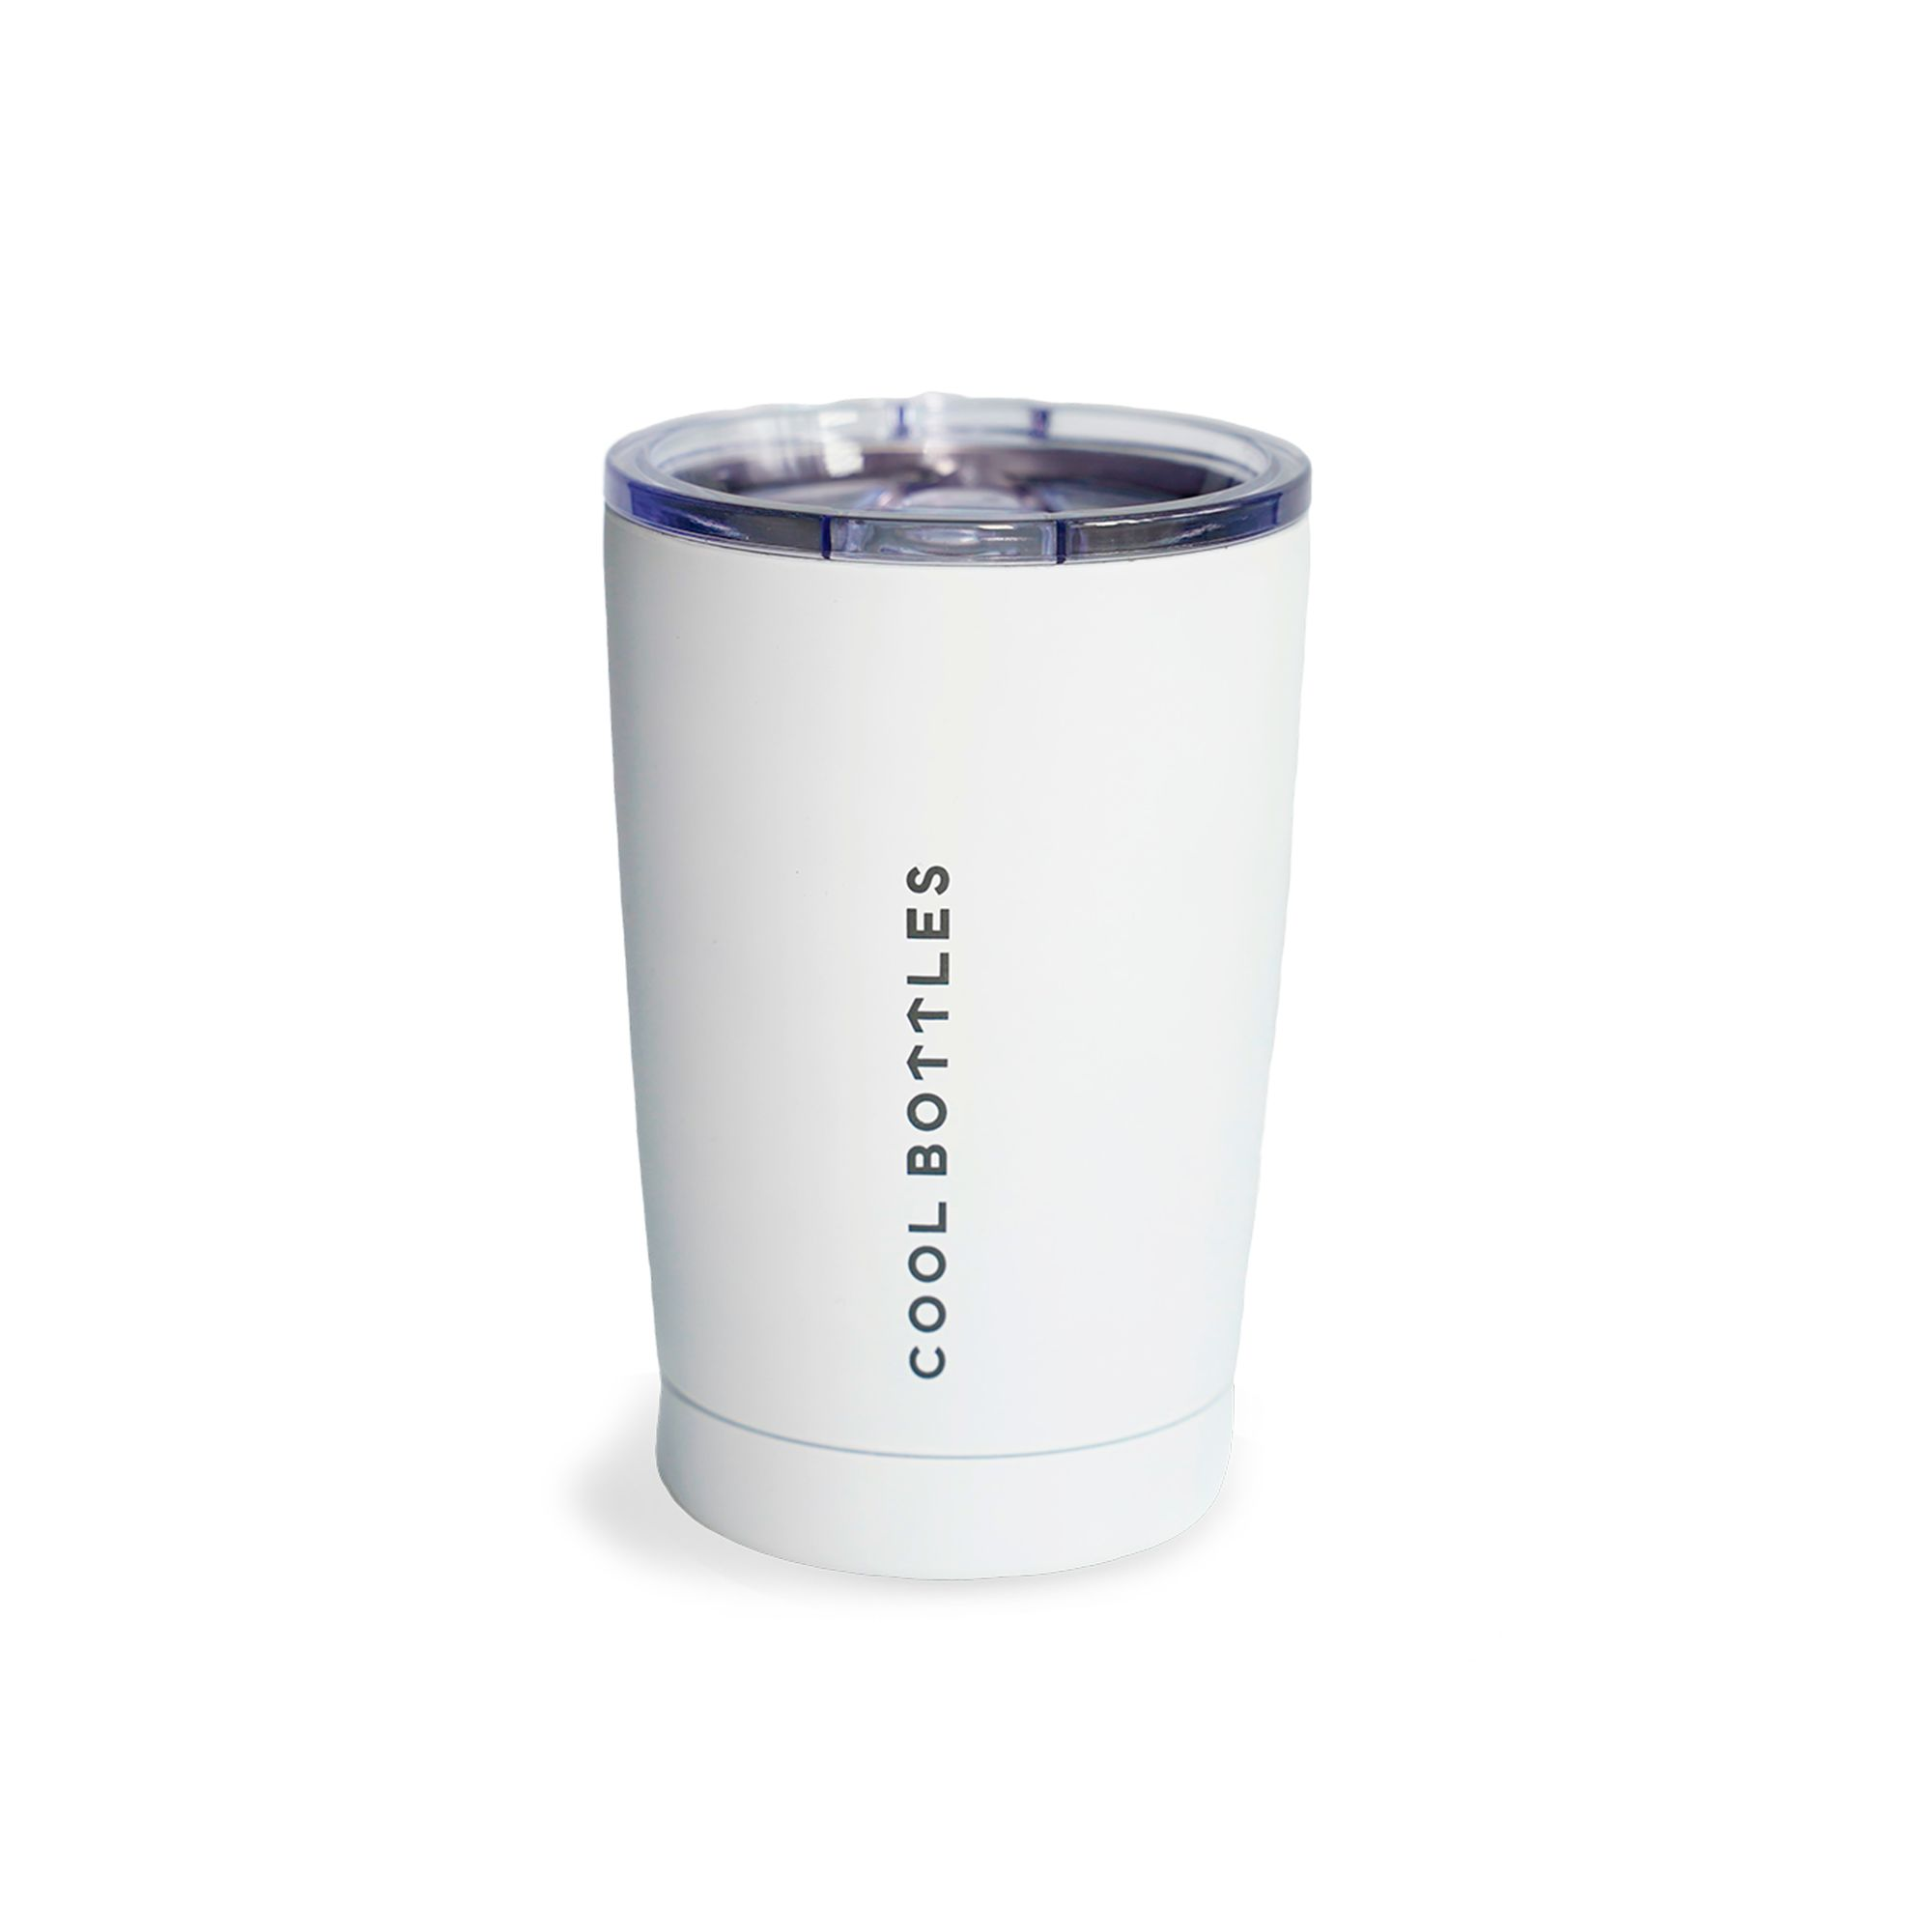 Vaso de acero inoxidable Mono White